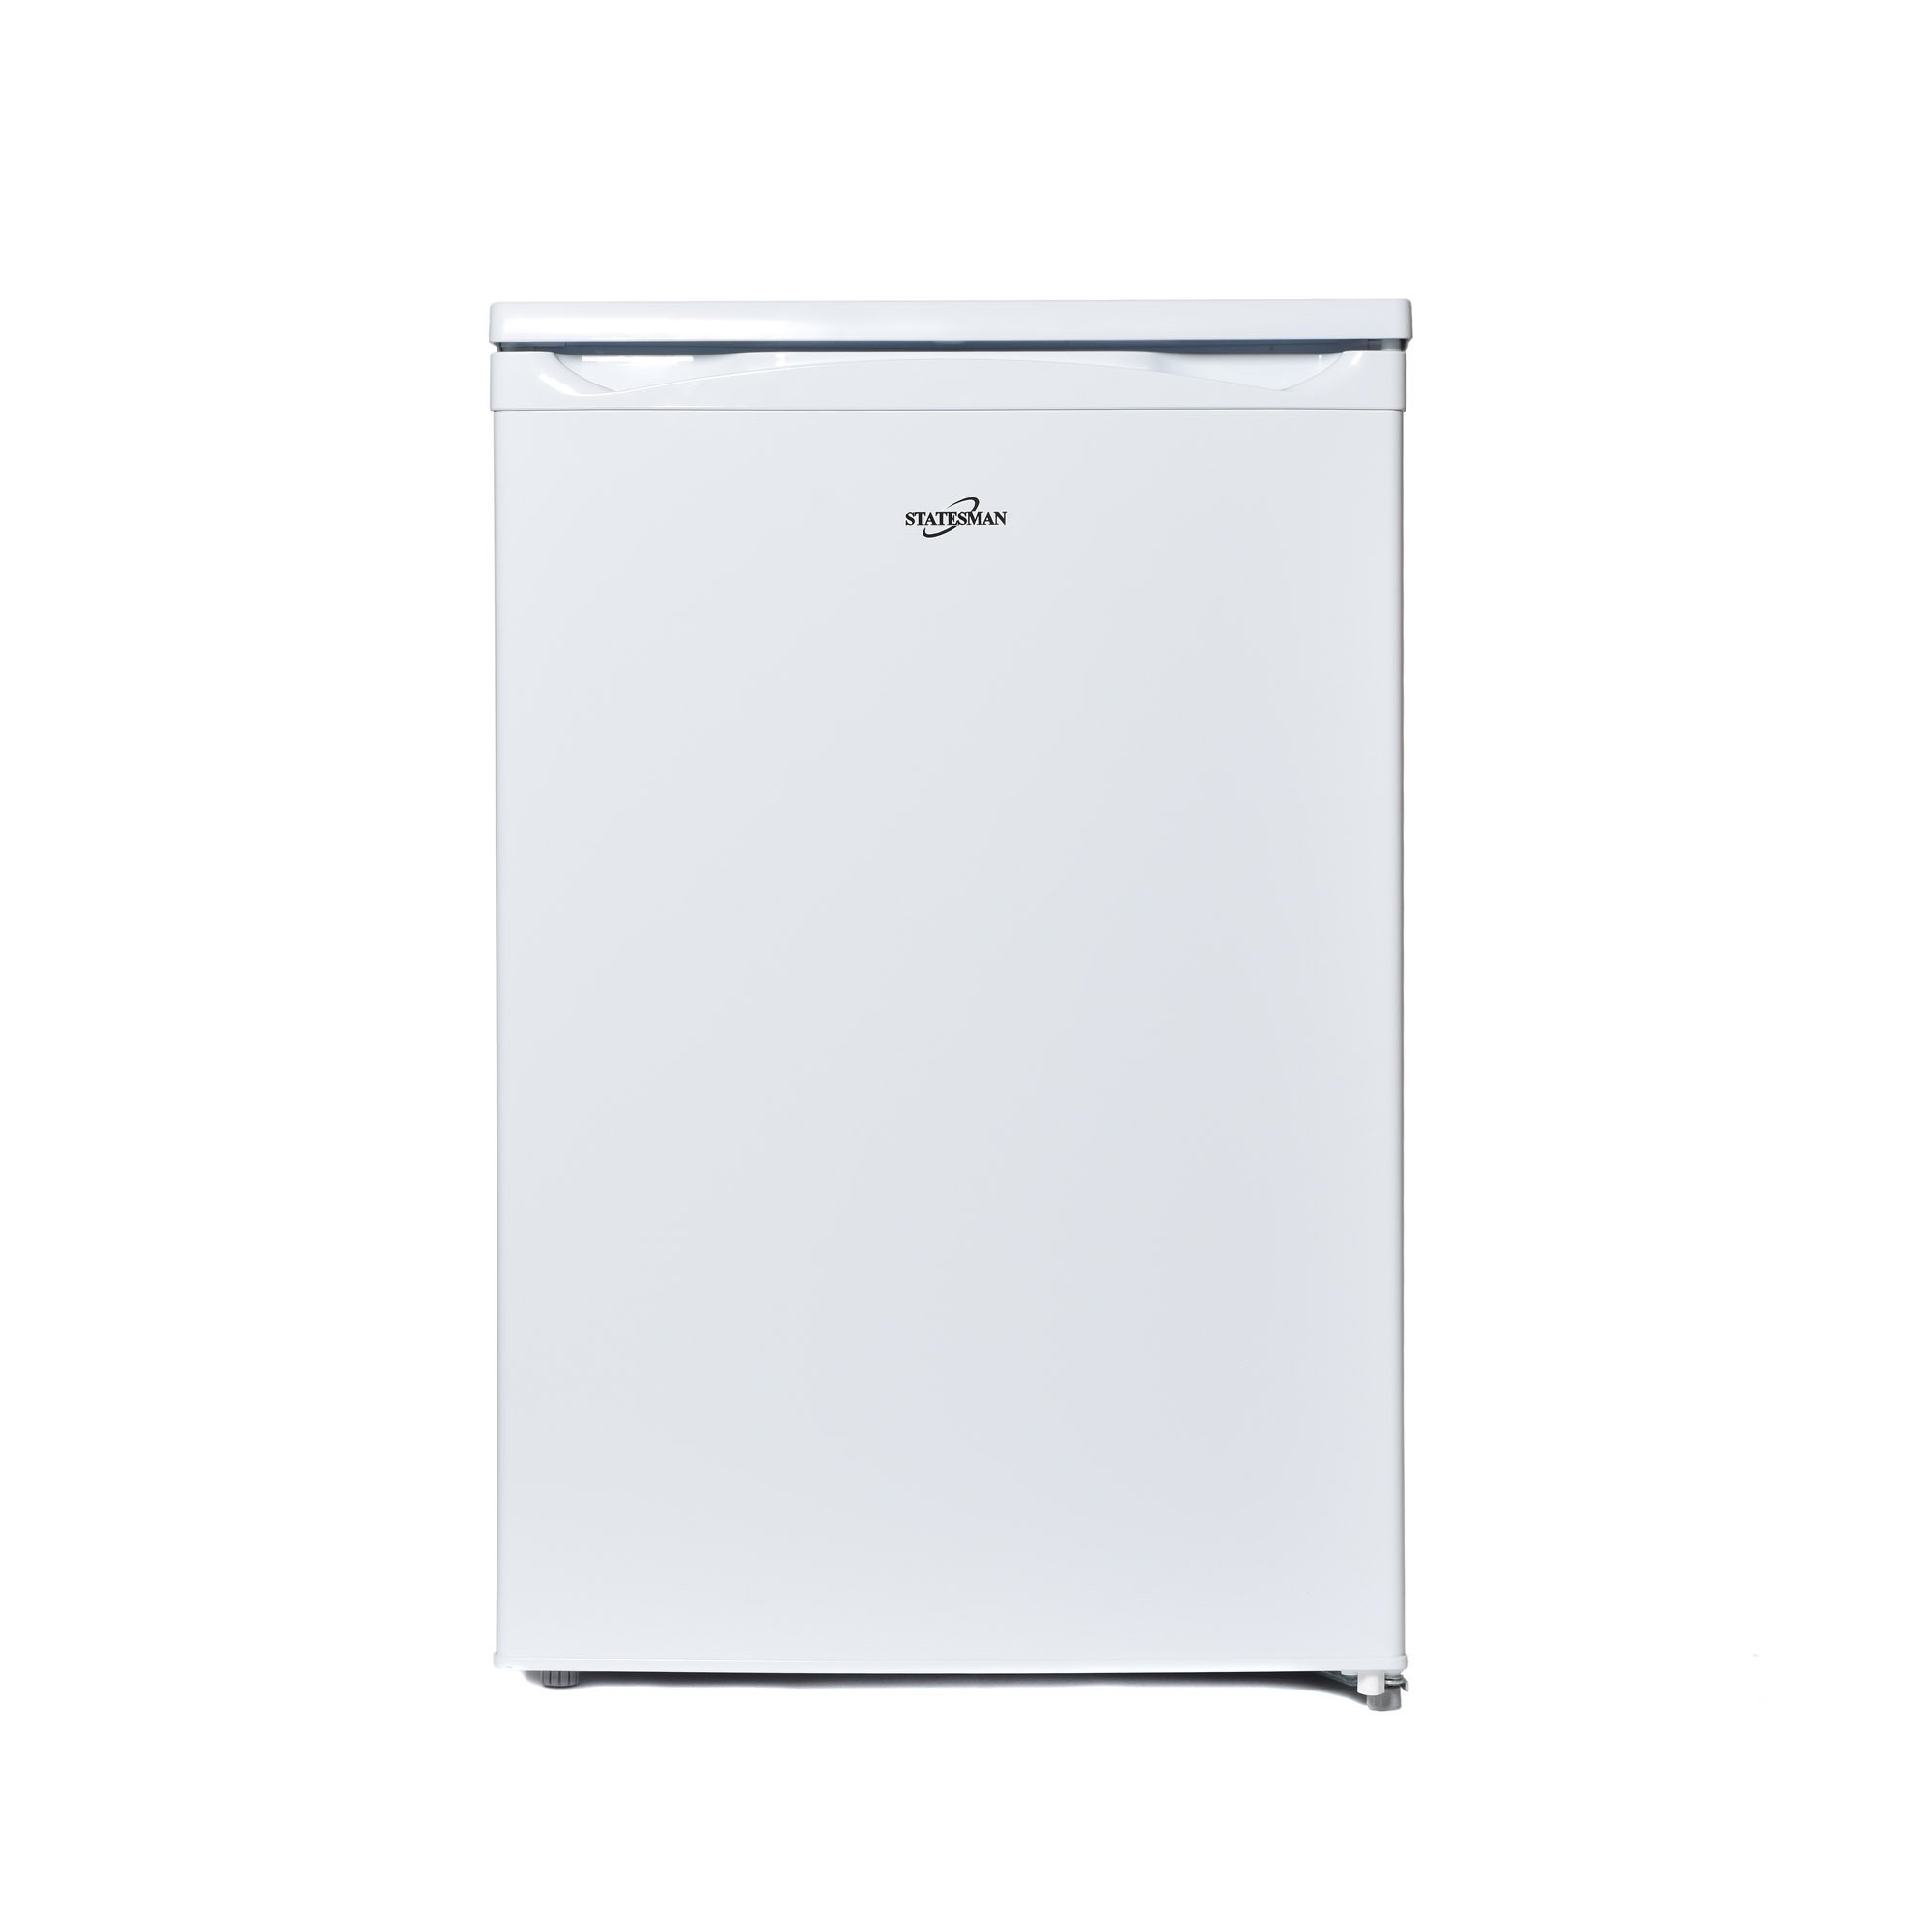 Statesman Freestanding R155W Under Counter Fridge with 4 Ice Box, 55 cm, White [Energy Class A+]